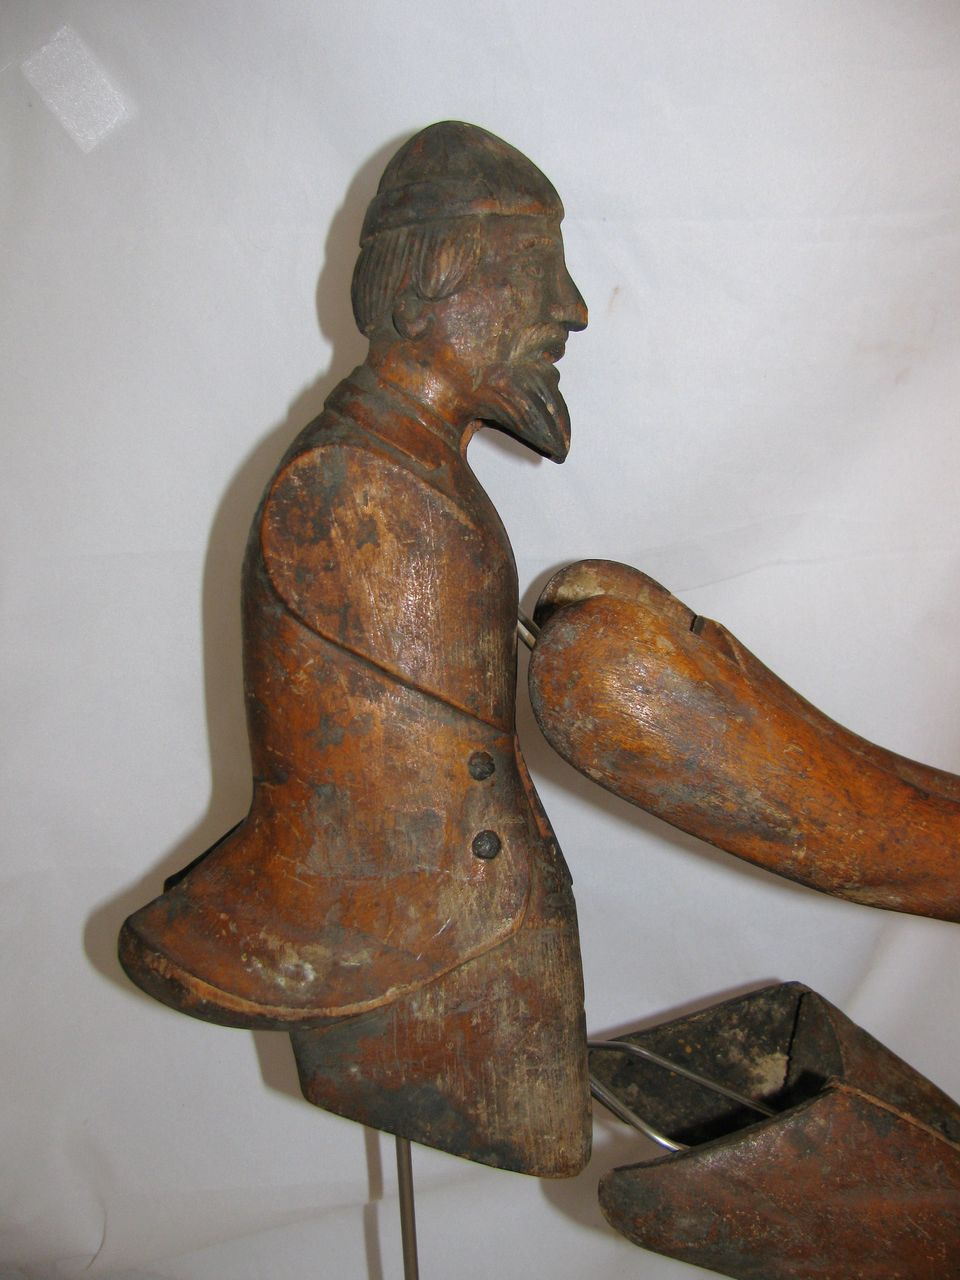 Antique wooden carved weather vane jockey mold from